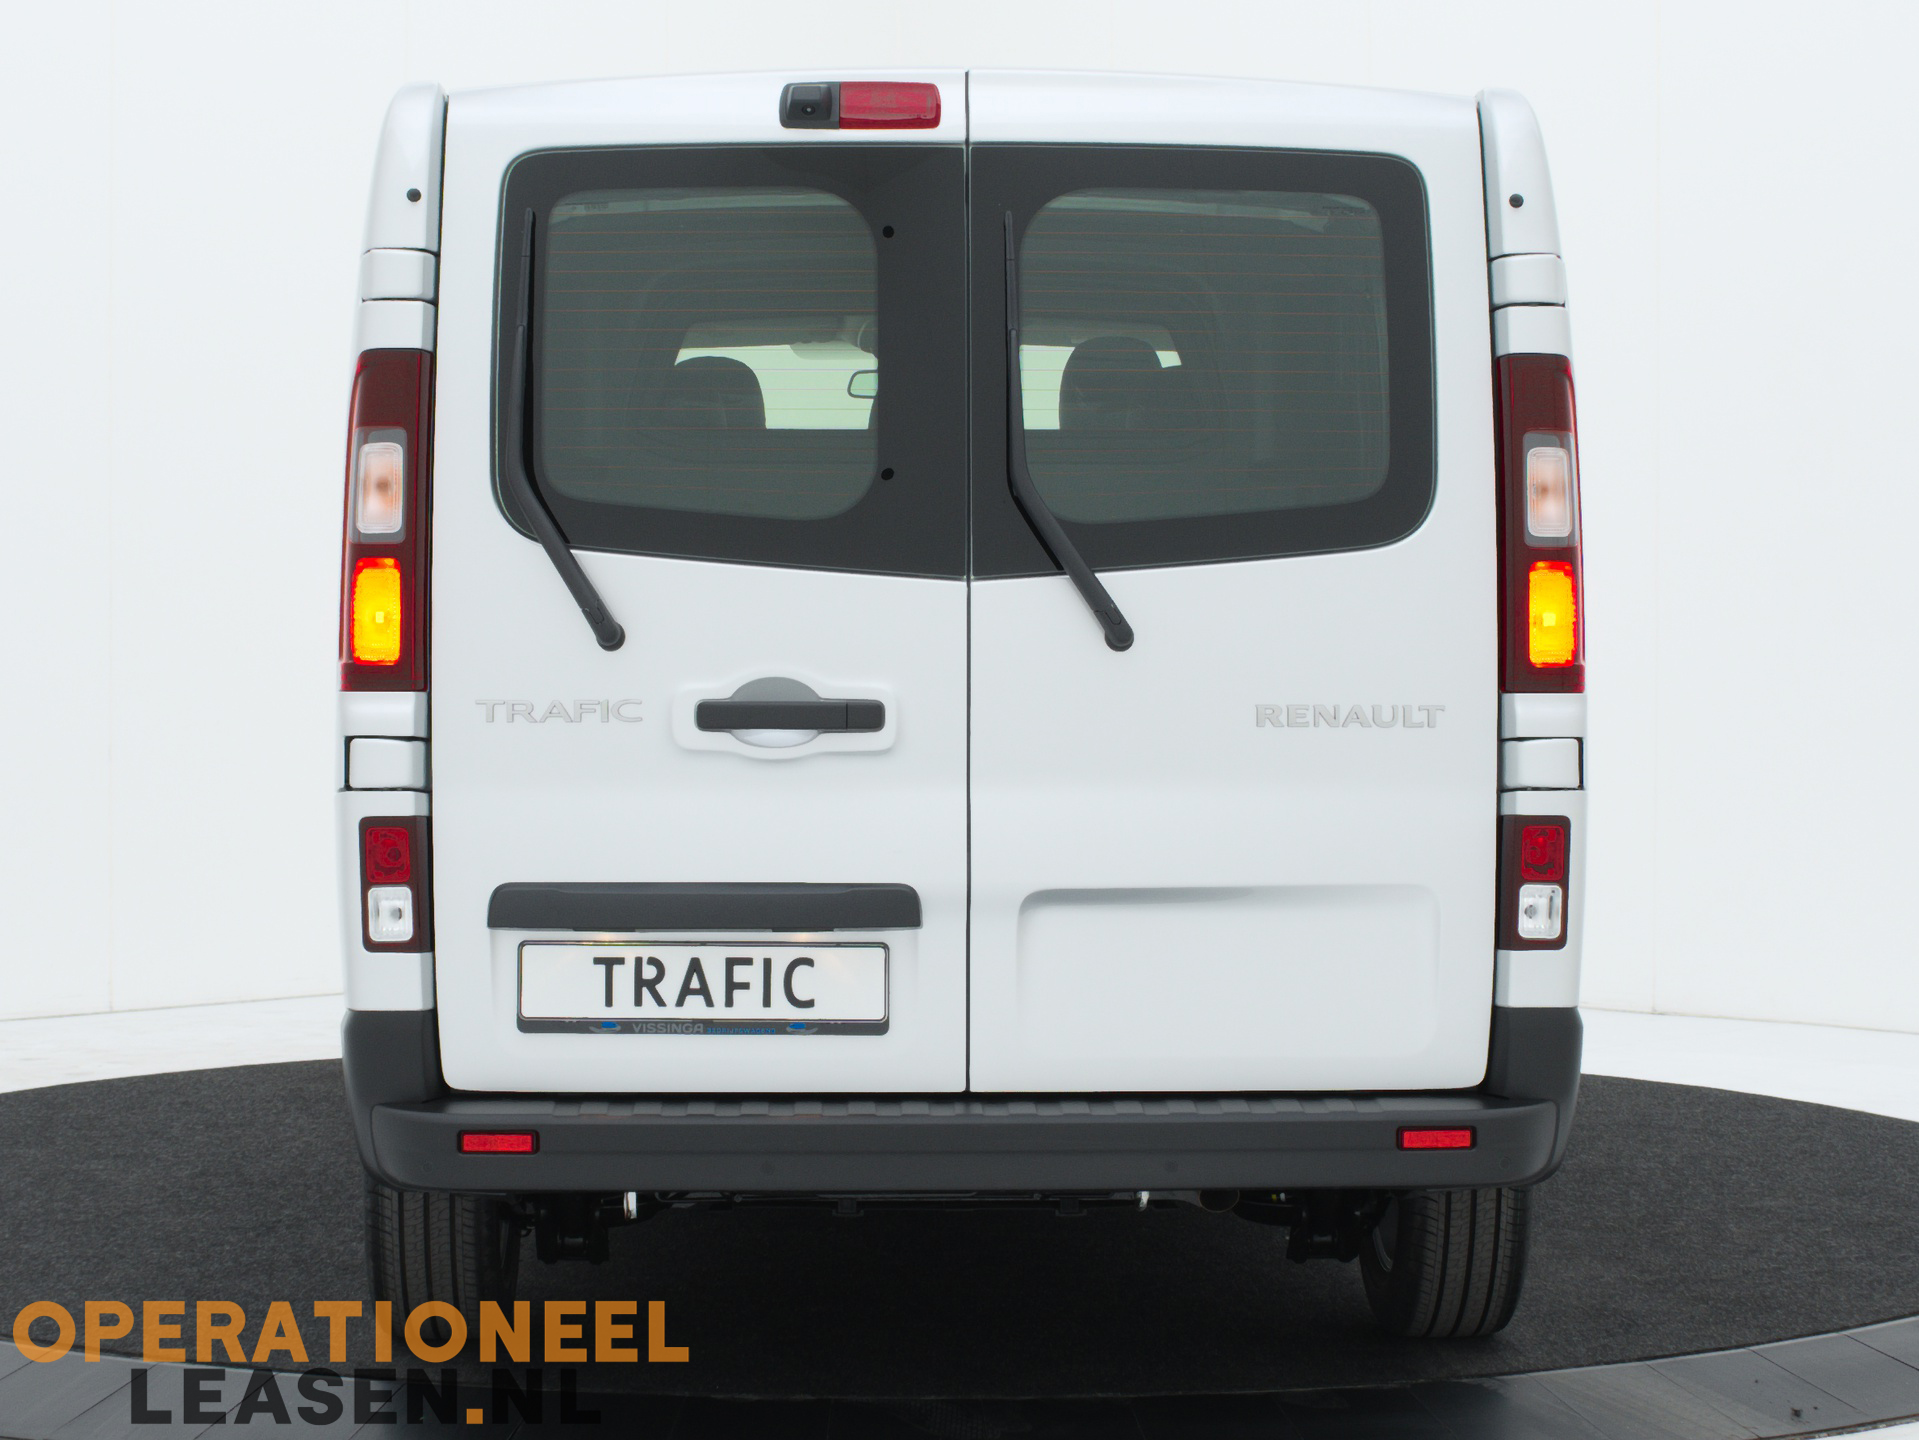 Operational lease Renault master traffic-11